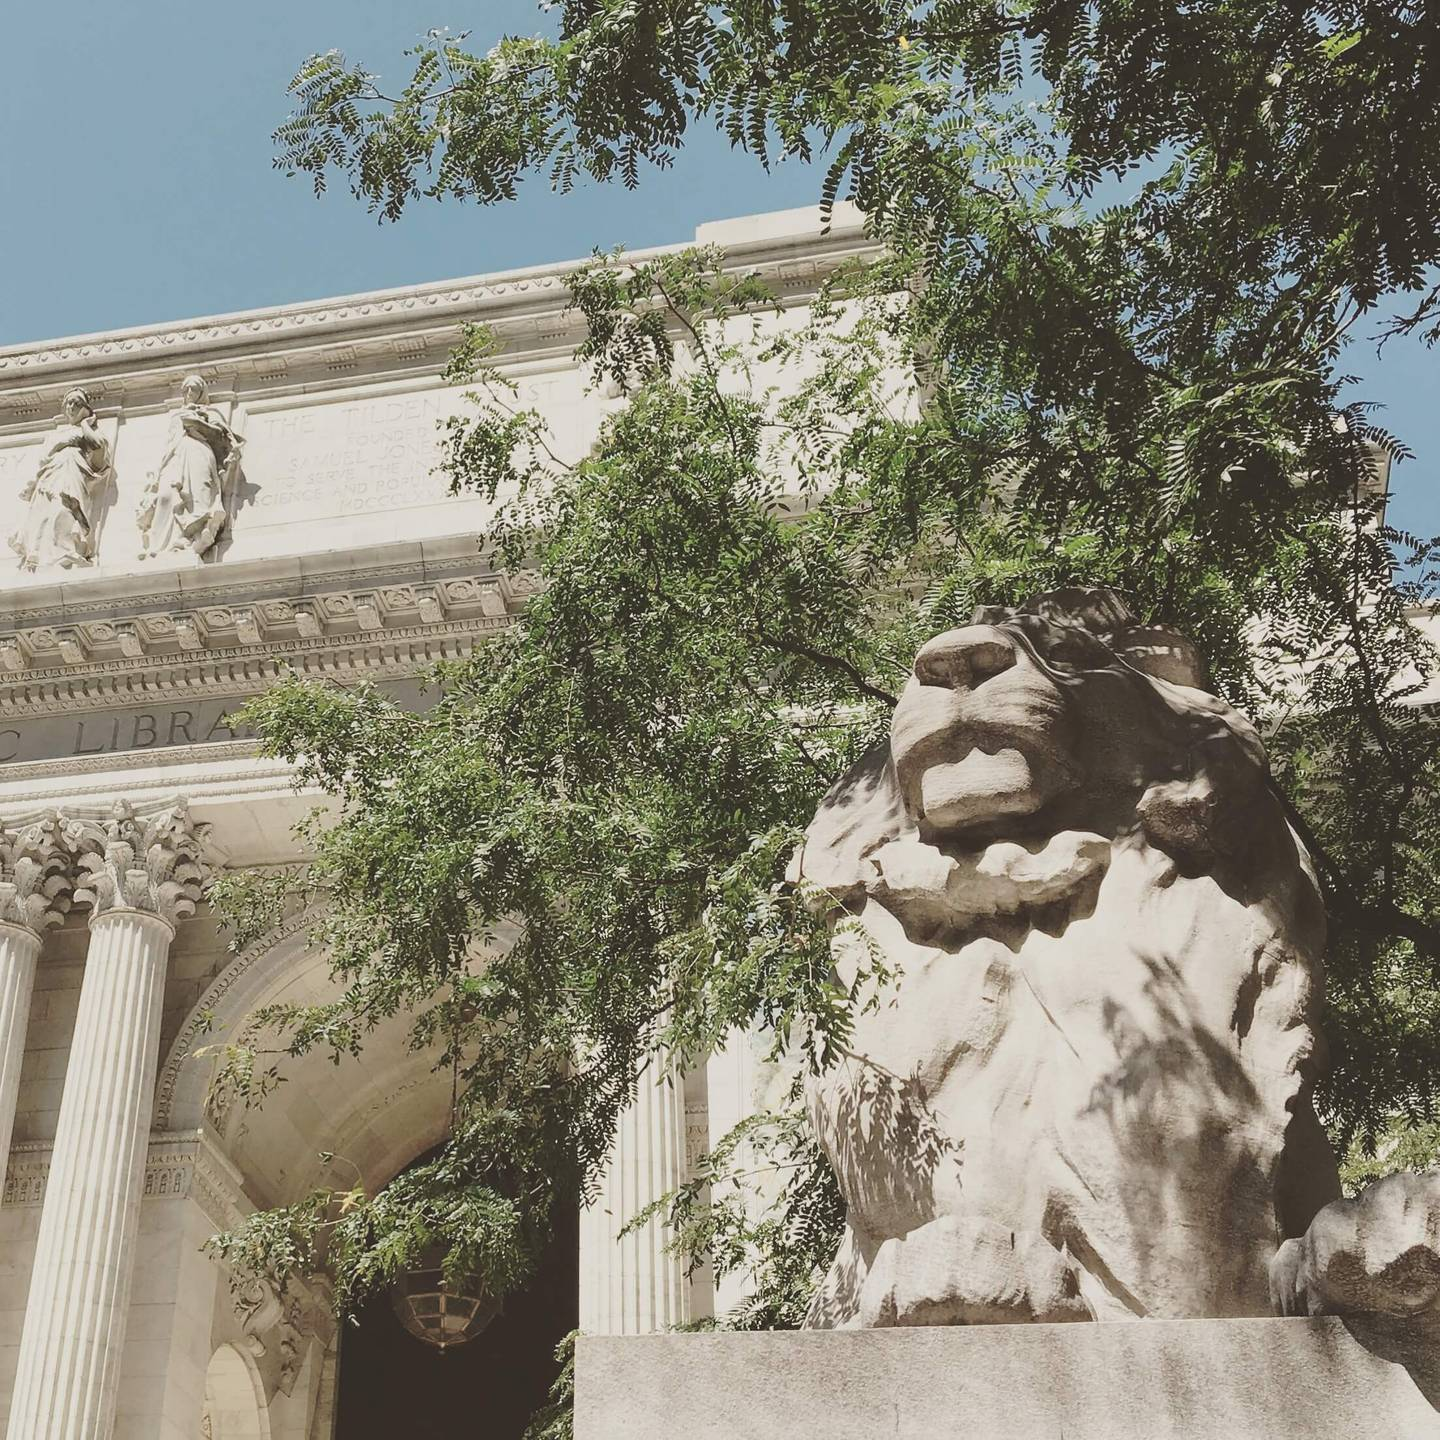 Marble lion in front of grand building, the New York Public Library's Stephen A. Schwarzman Building.